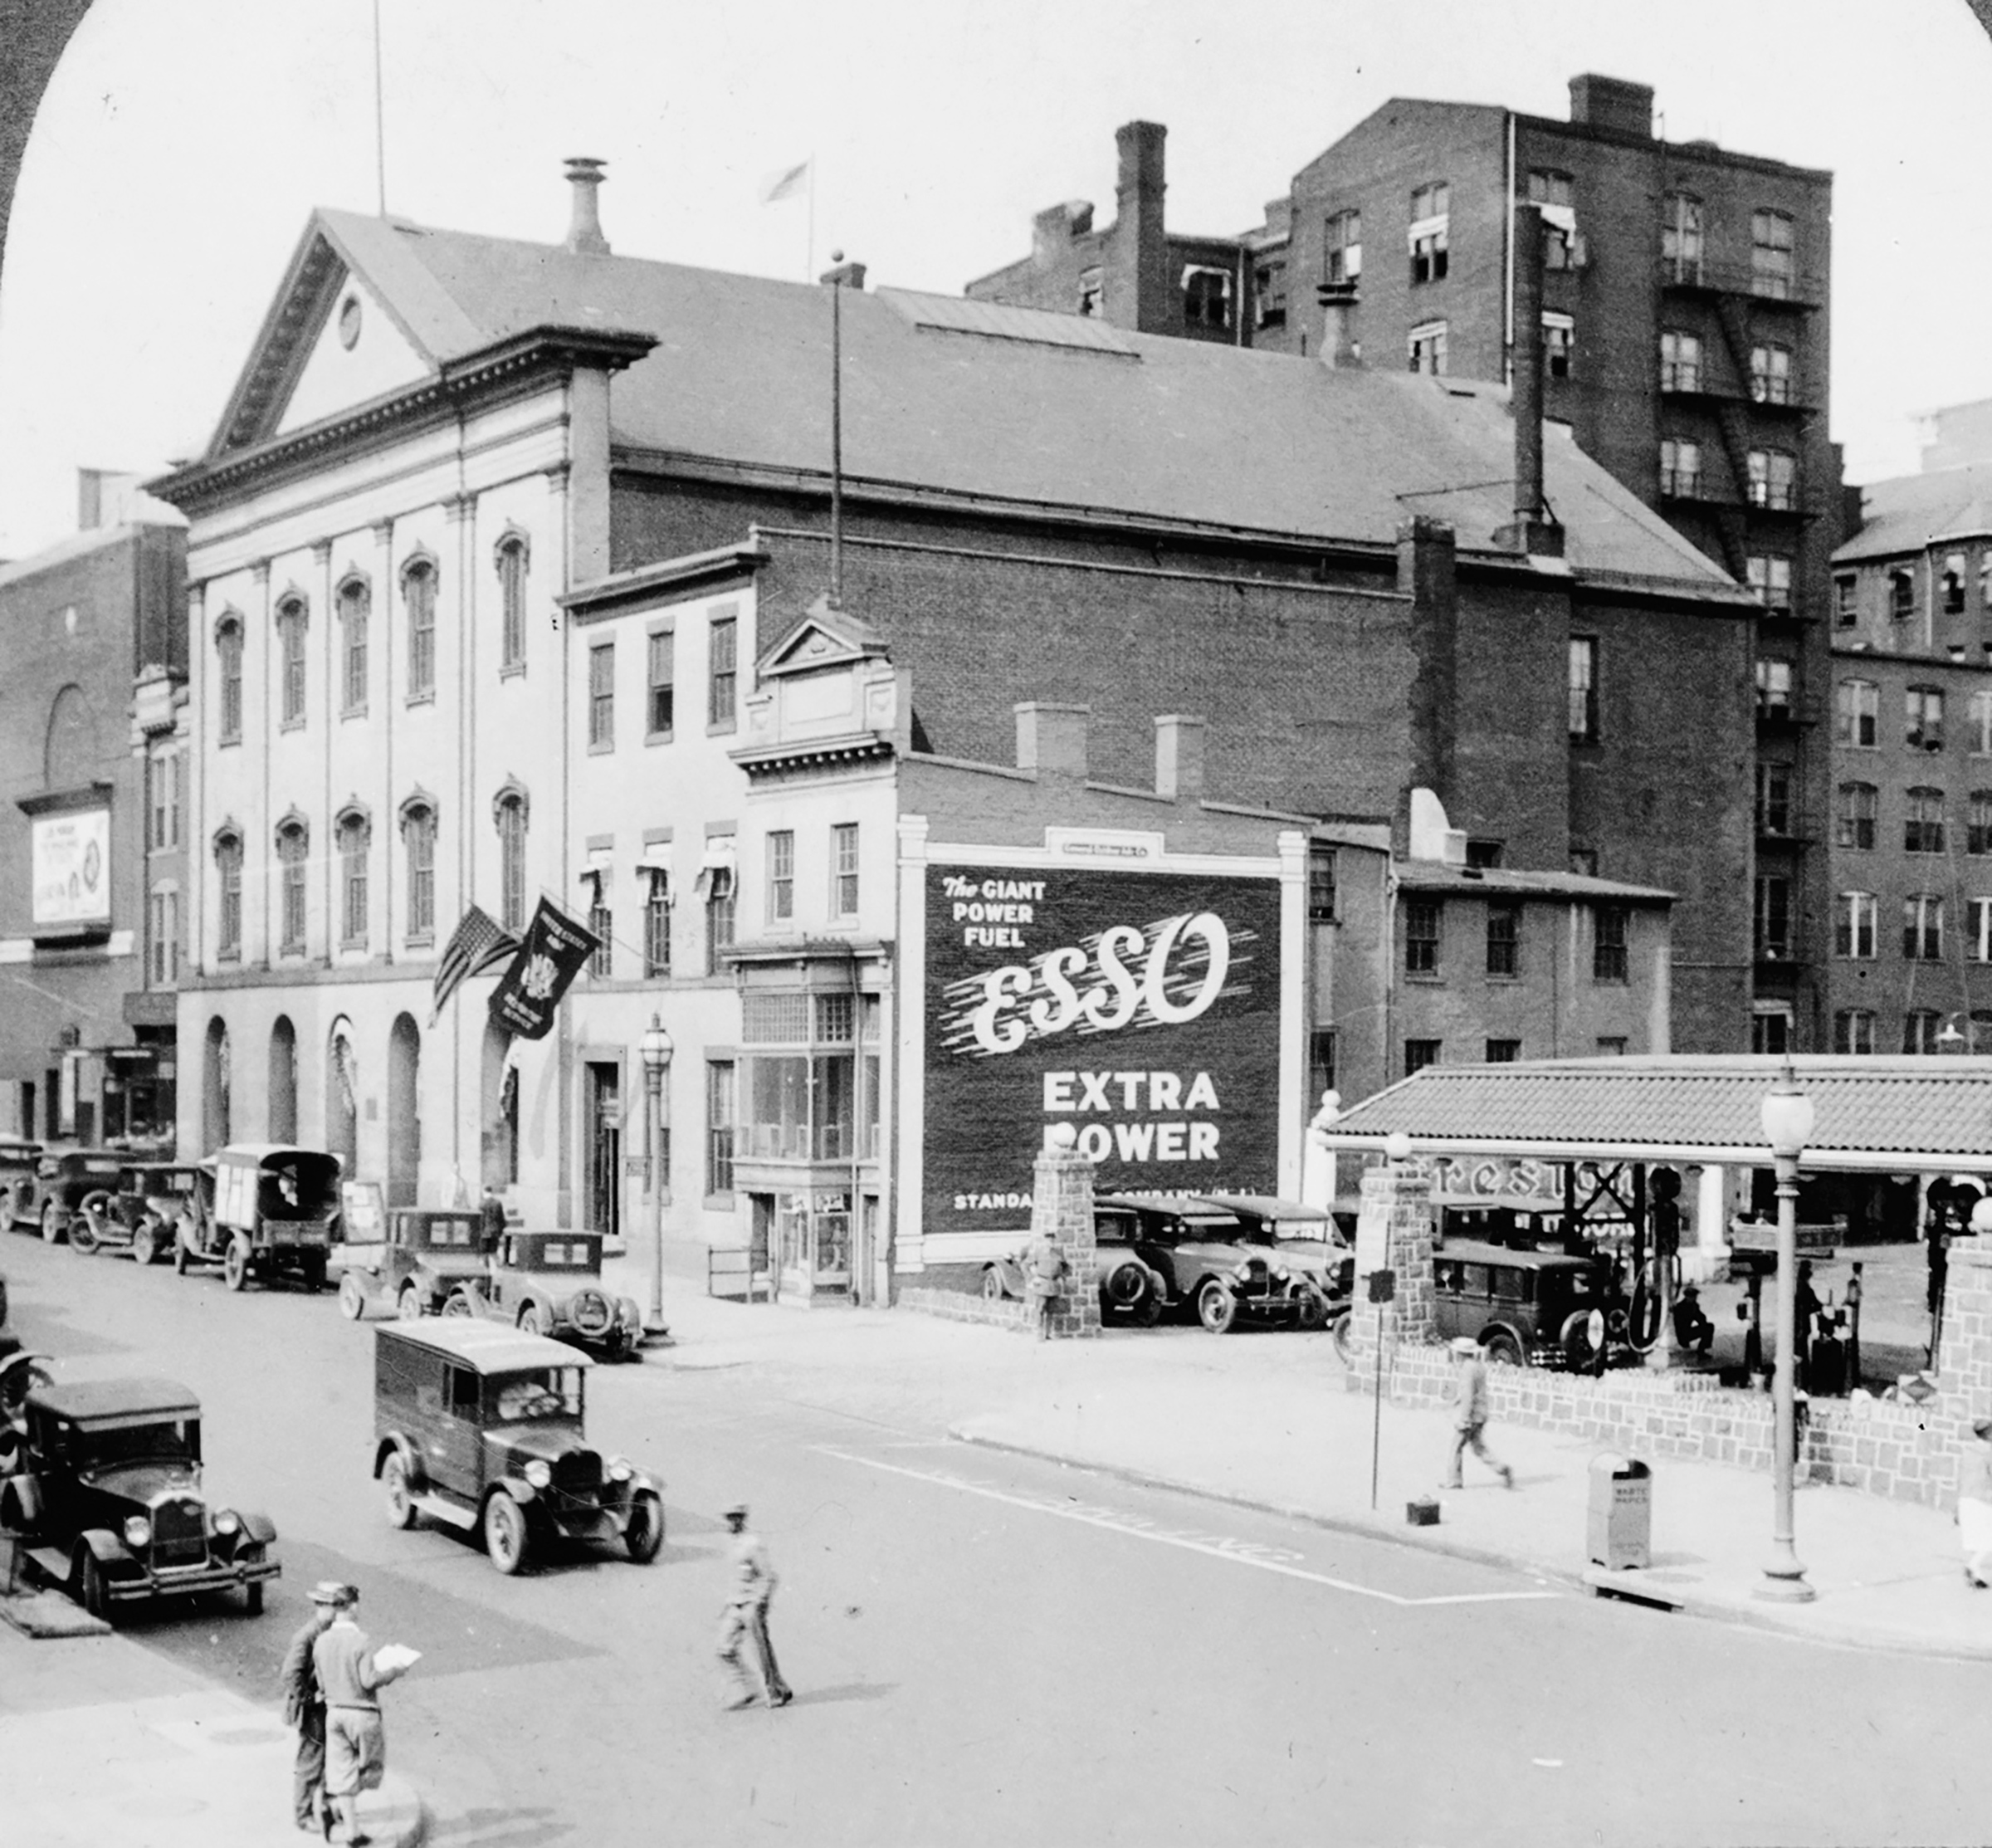 Ford's Theatre in Washington, D.C., seen in the 1920s